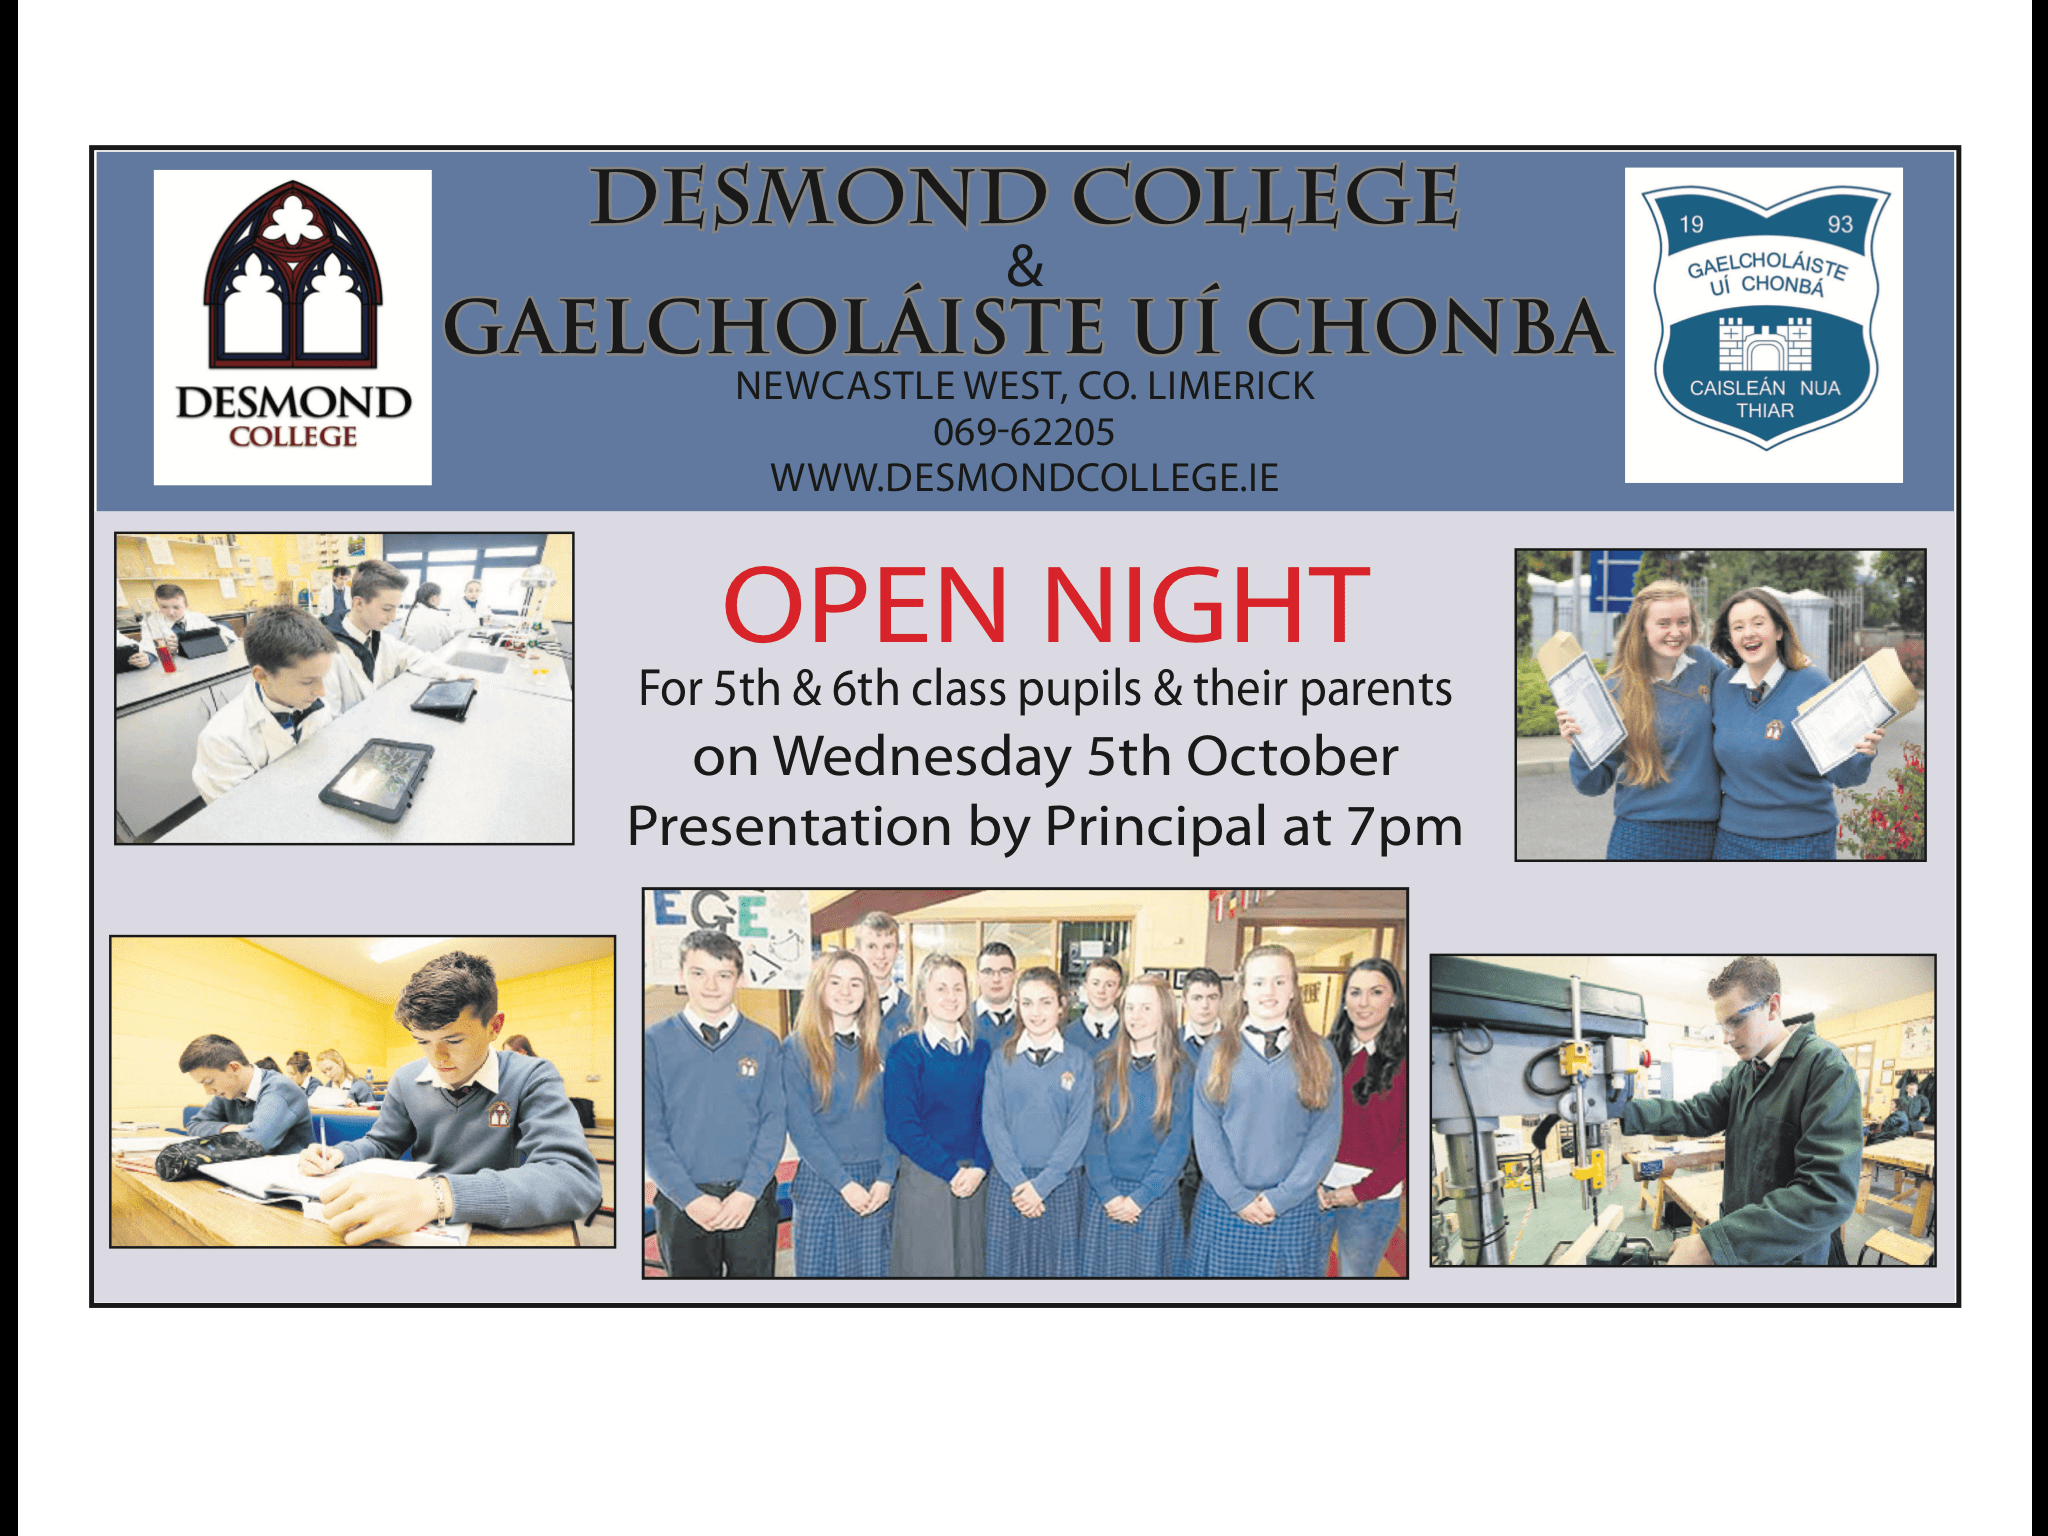 Open Night for 5th and 6th class pupils and their parents on Wednesday 5th October presentation by principal at 7pm